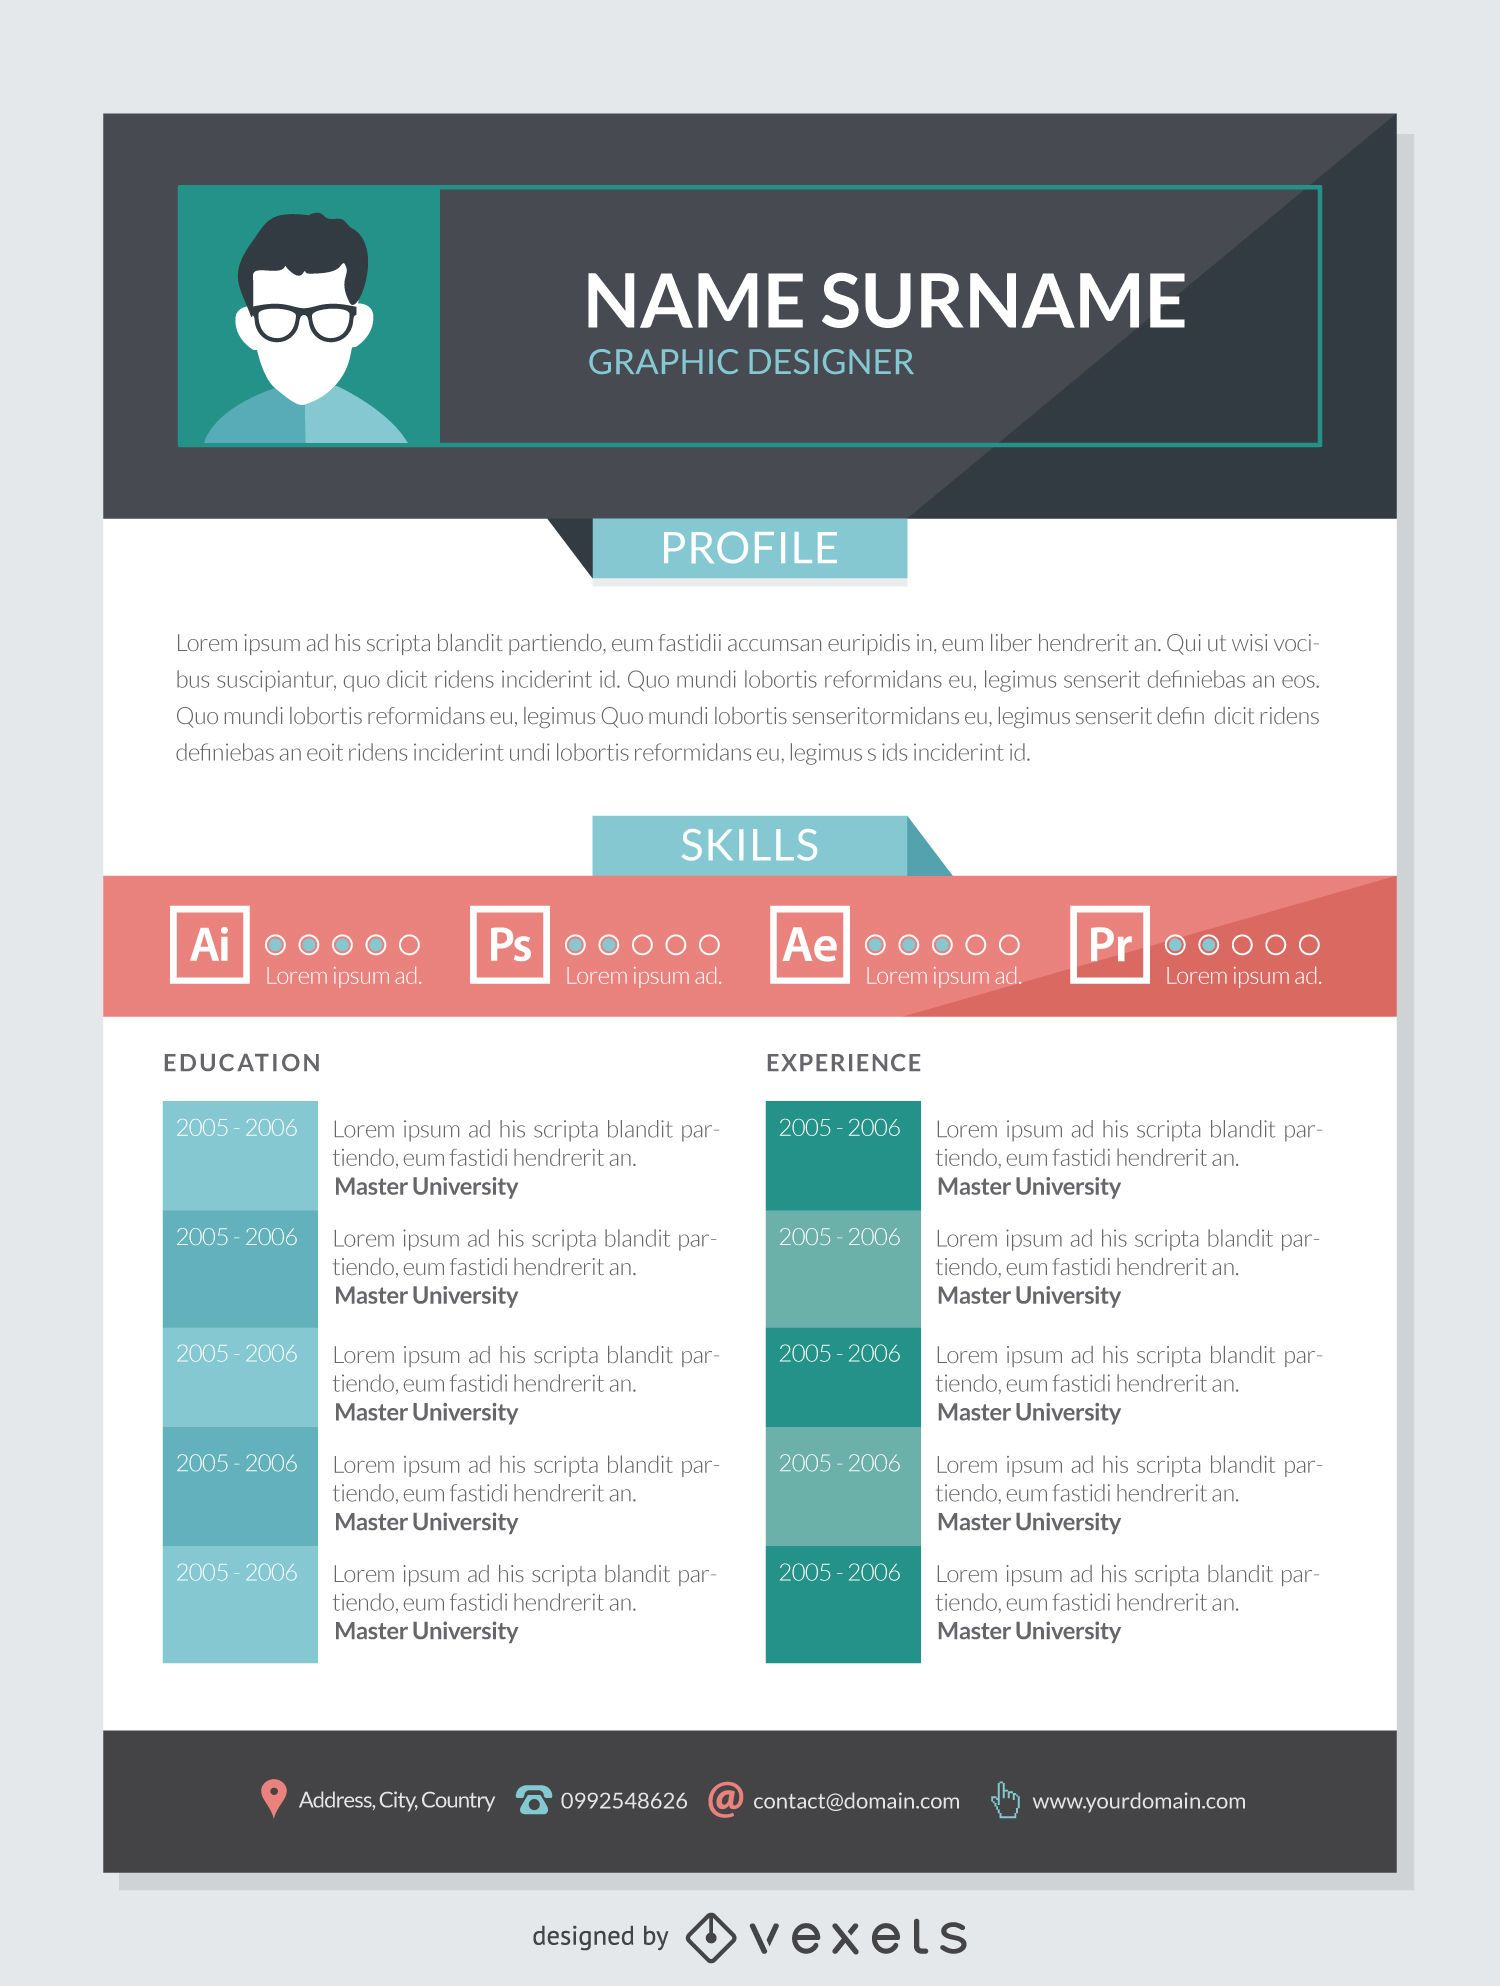 graphic designer cv mockup template vector